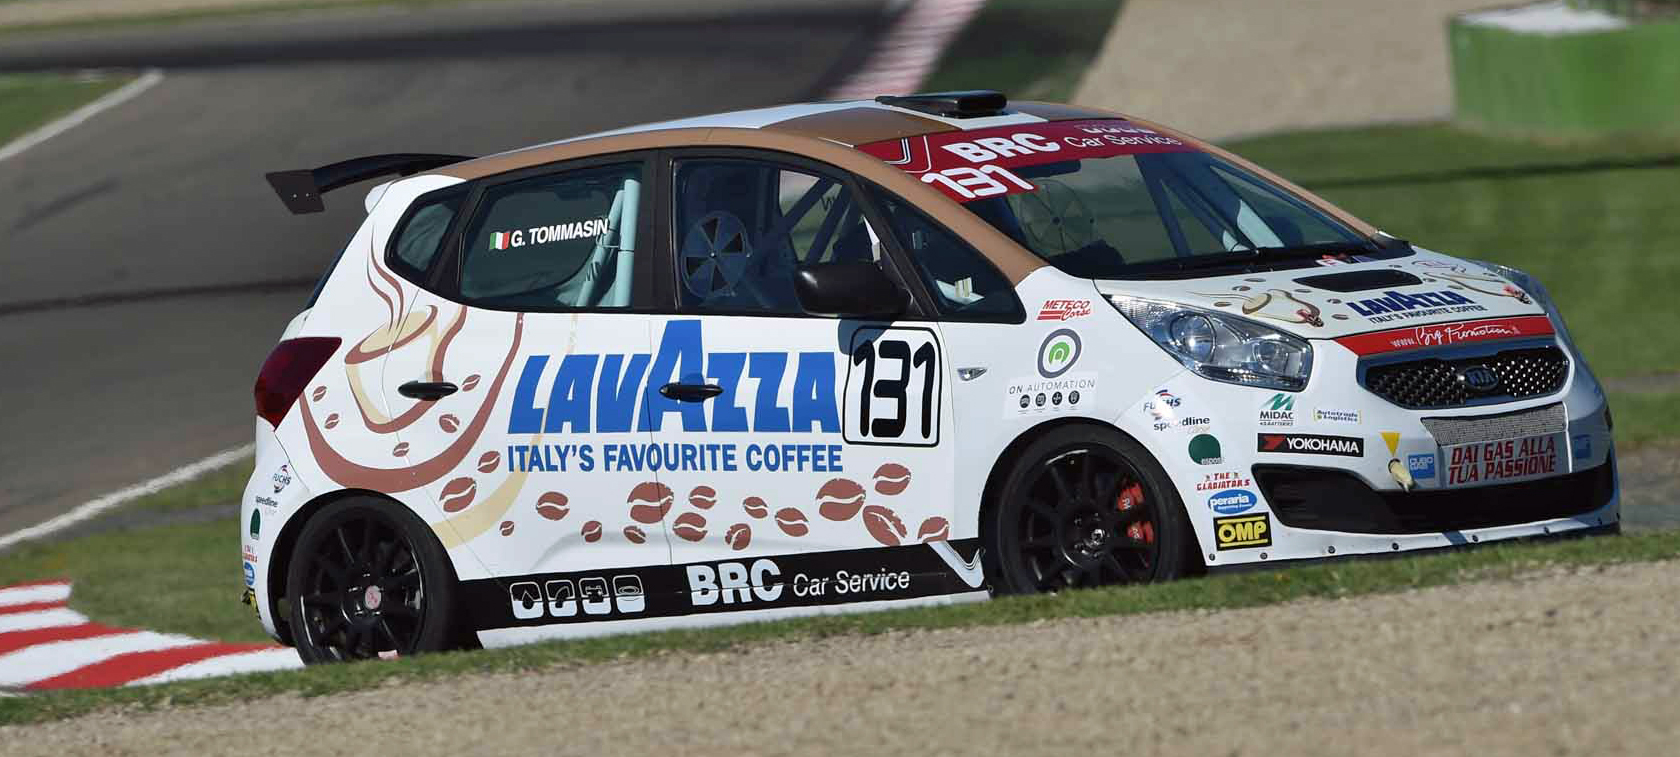 Green Hybrid Cup 2015 at Imola